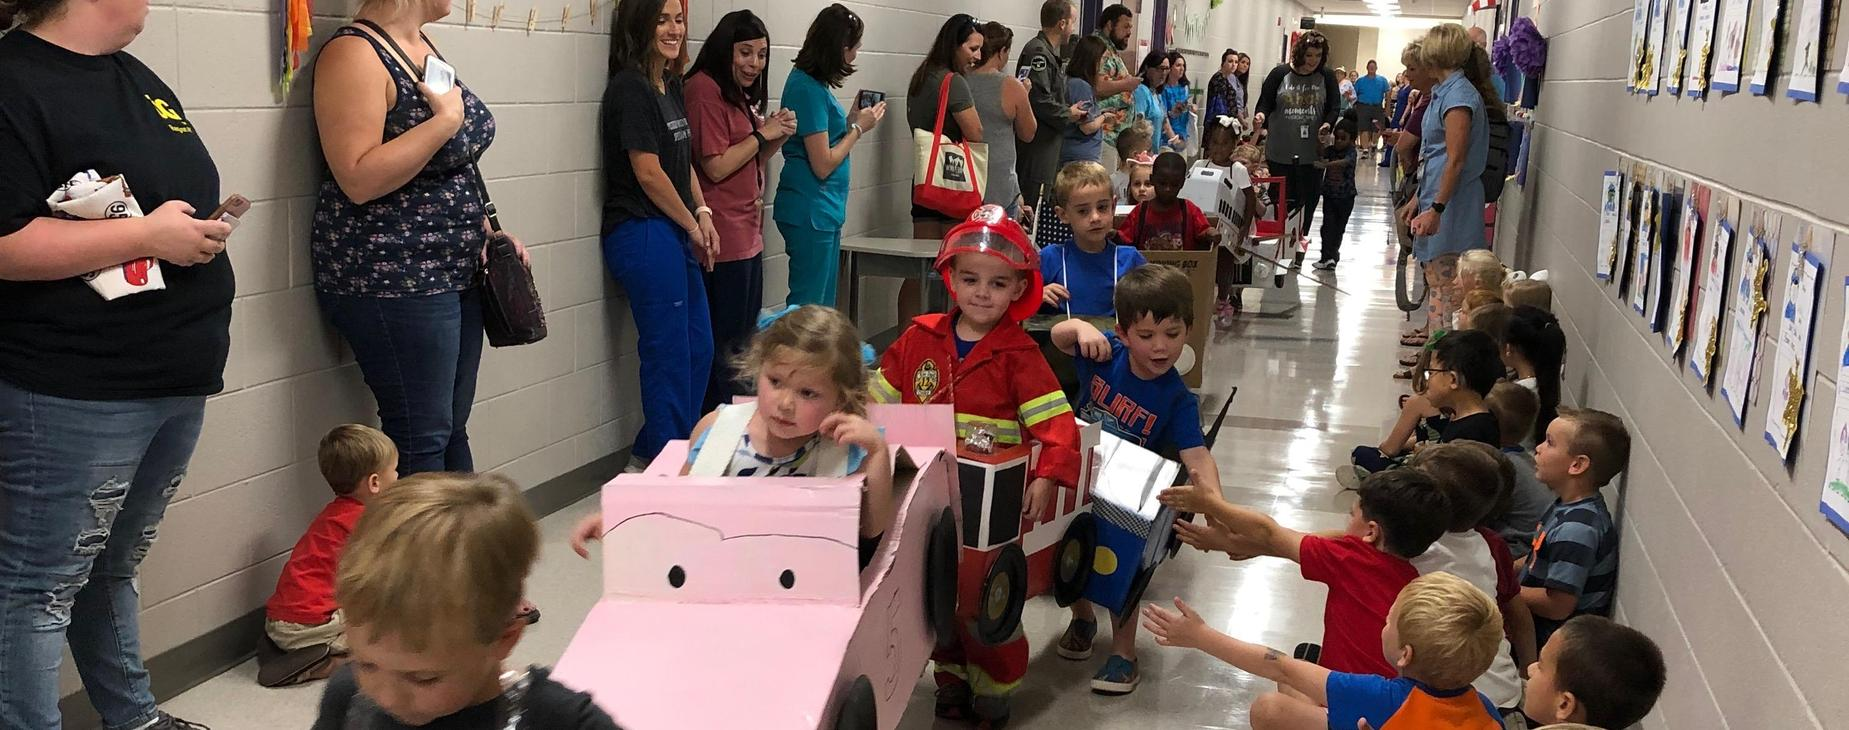 Kindergarten Car Parade Pics